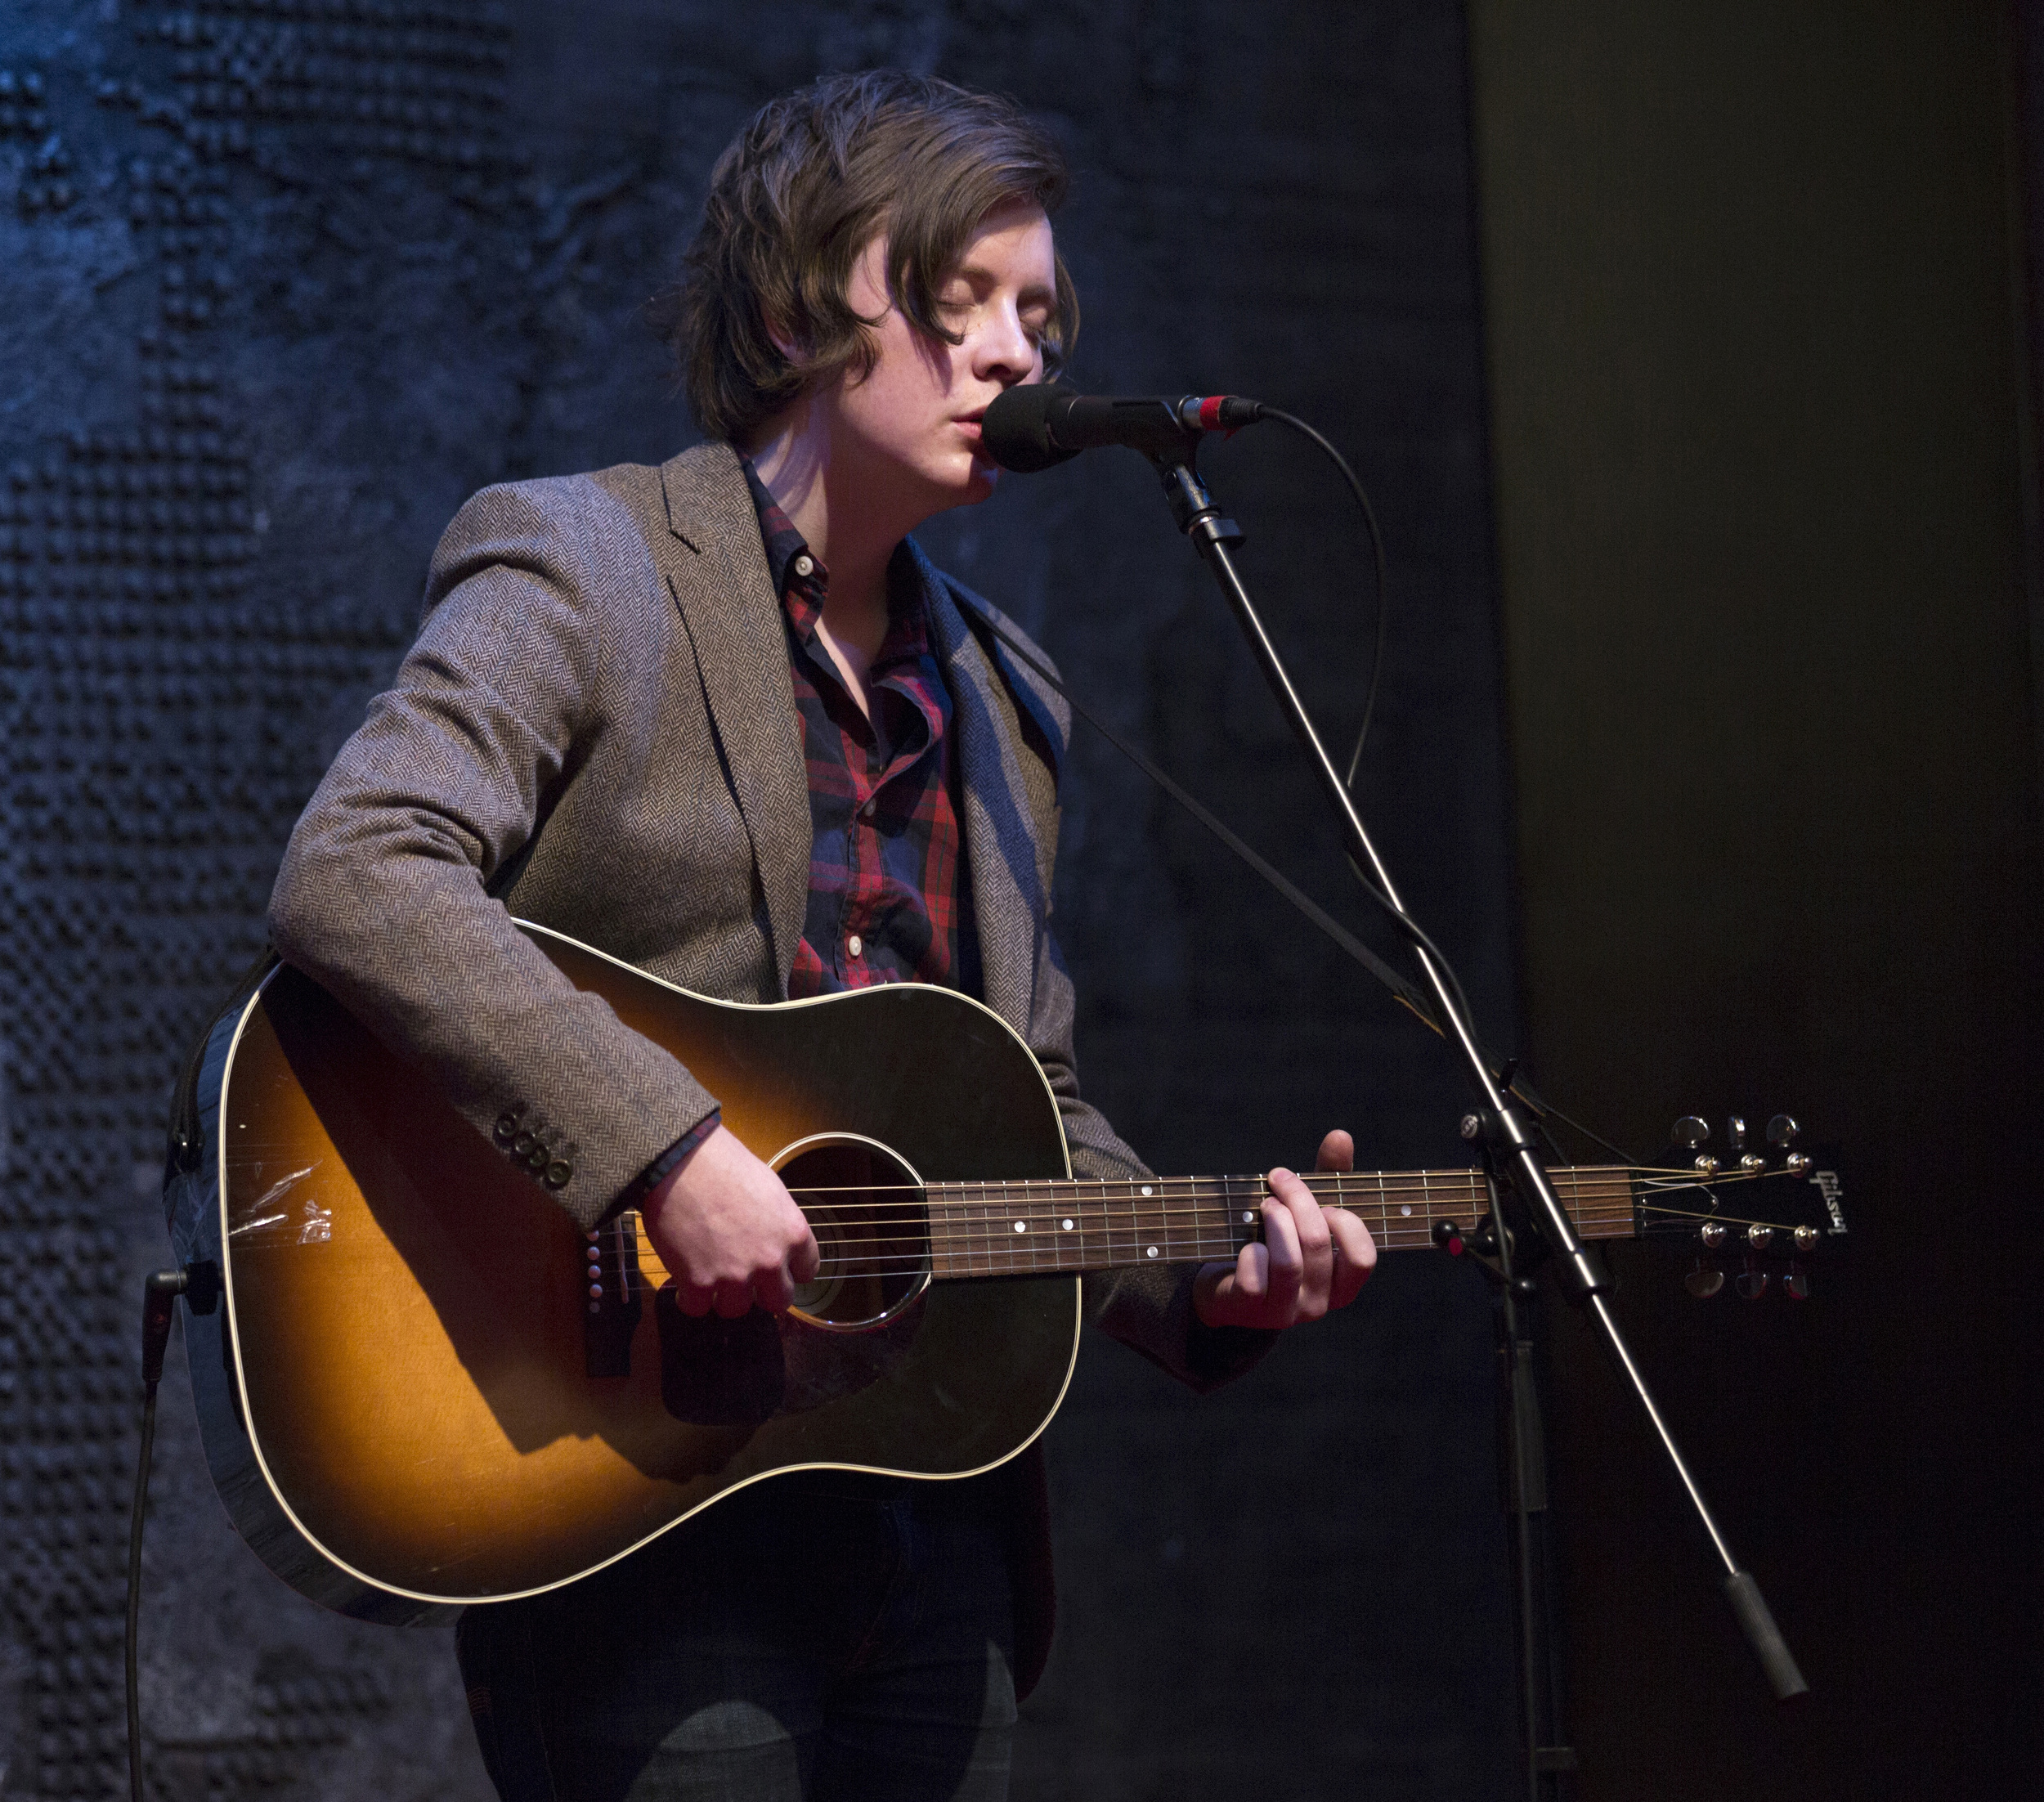 OTTAWA, ON. MAY 8, 2013 -- Singer-songwriter Kalle Mattson performs at the National Art Centre's NAC Presents Fall lineup announcement on Wednesday, May 8, 2013. (Leslie Schachter/Ottawa Citizen)